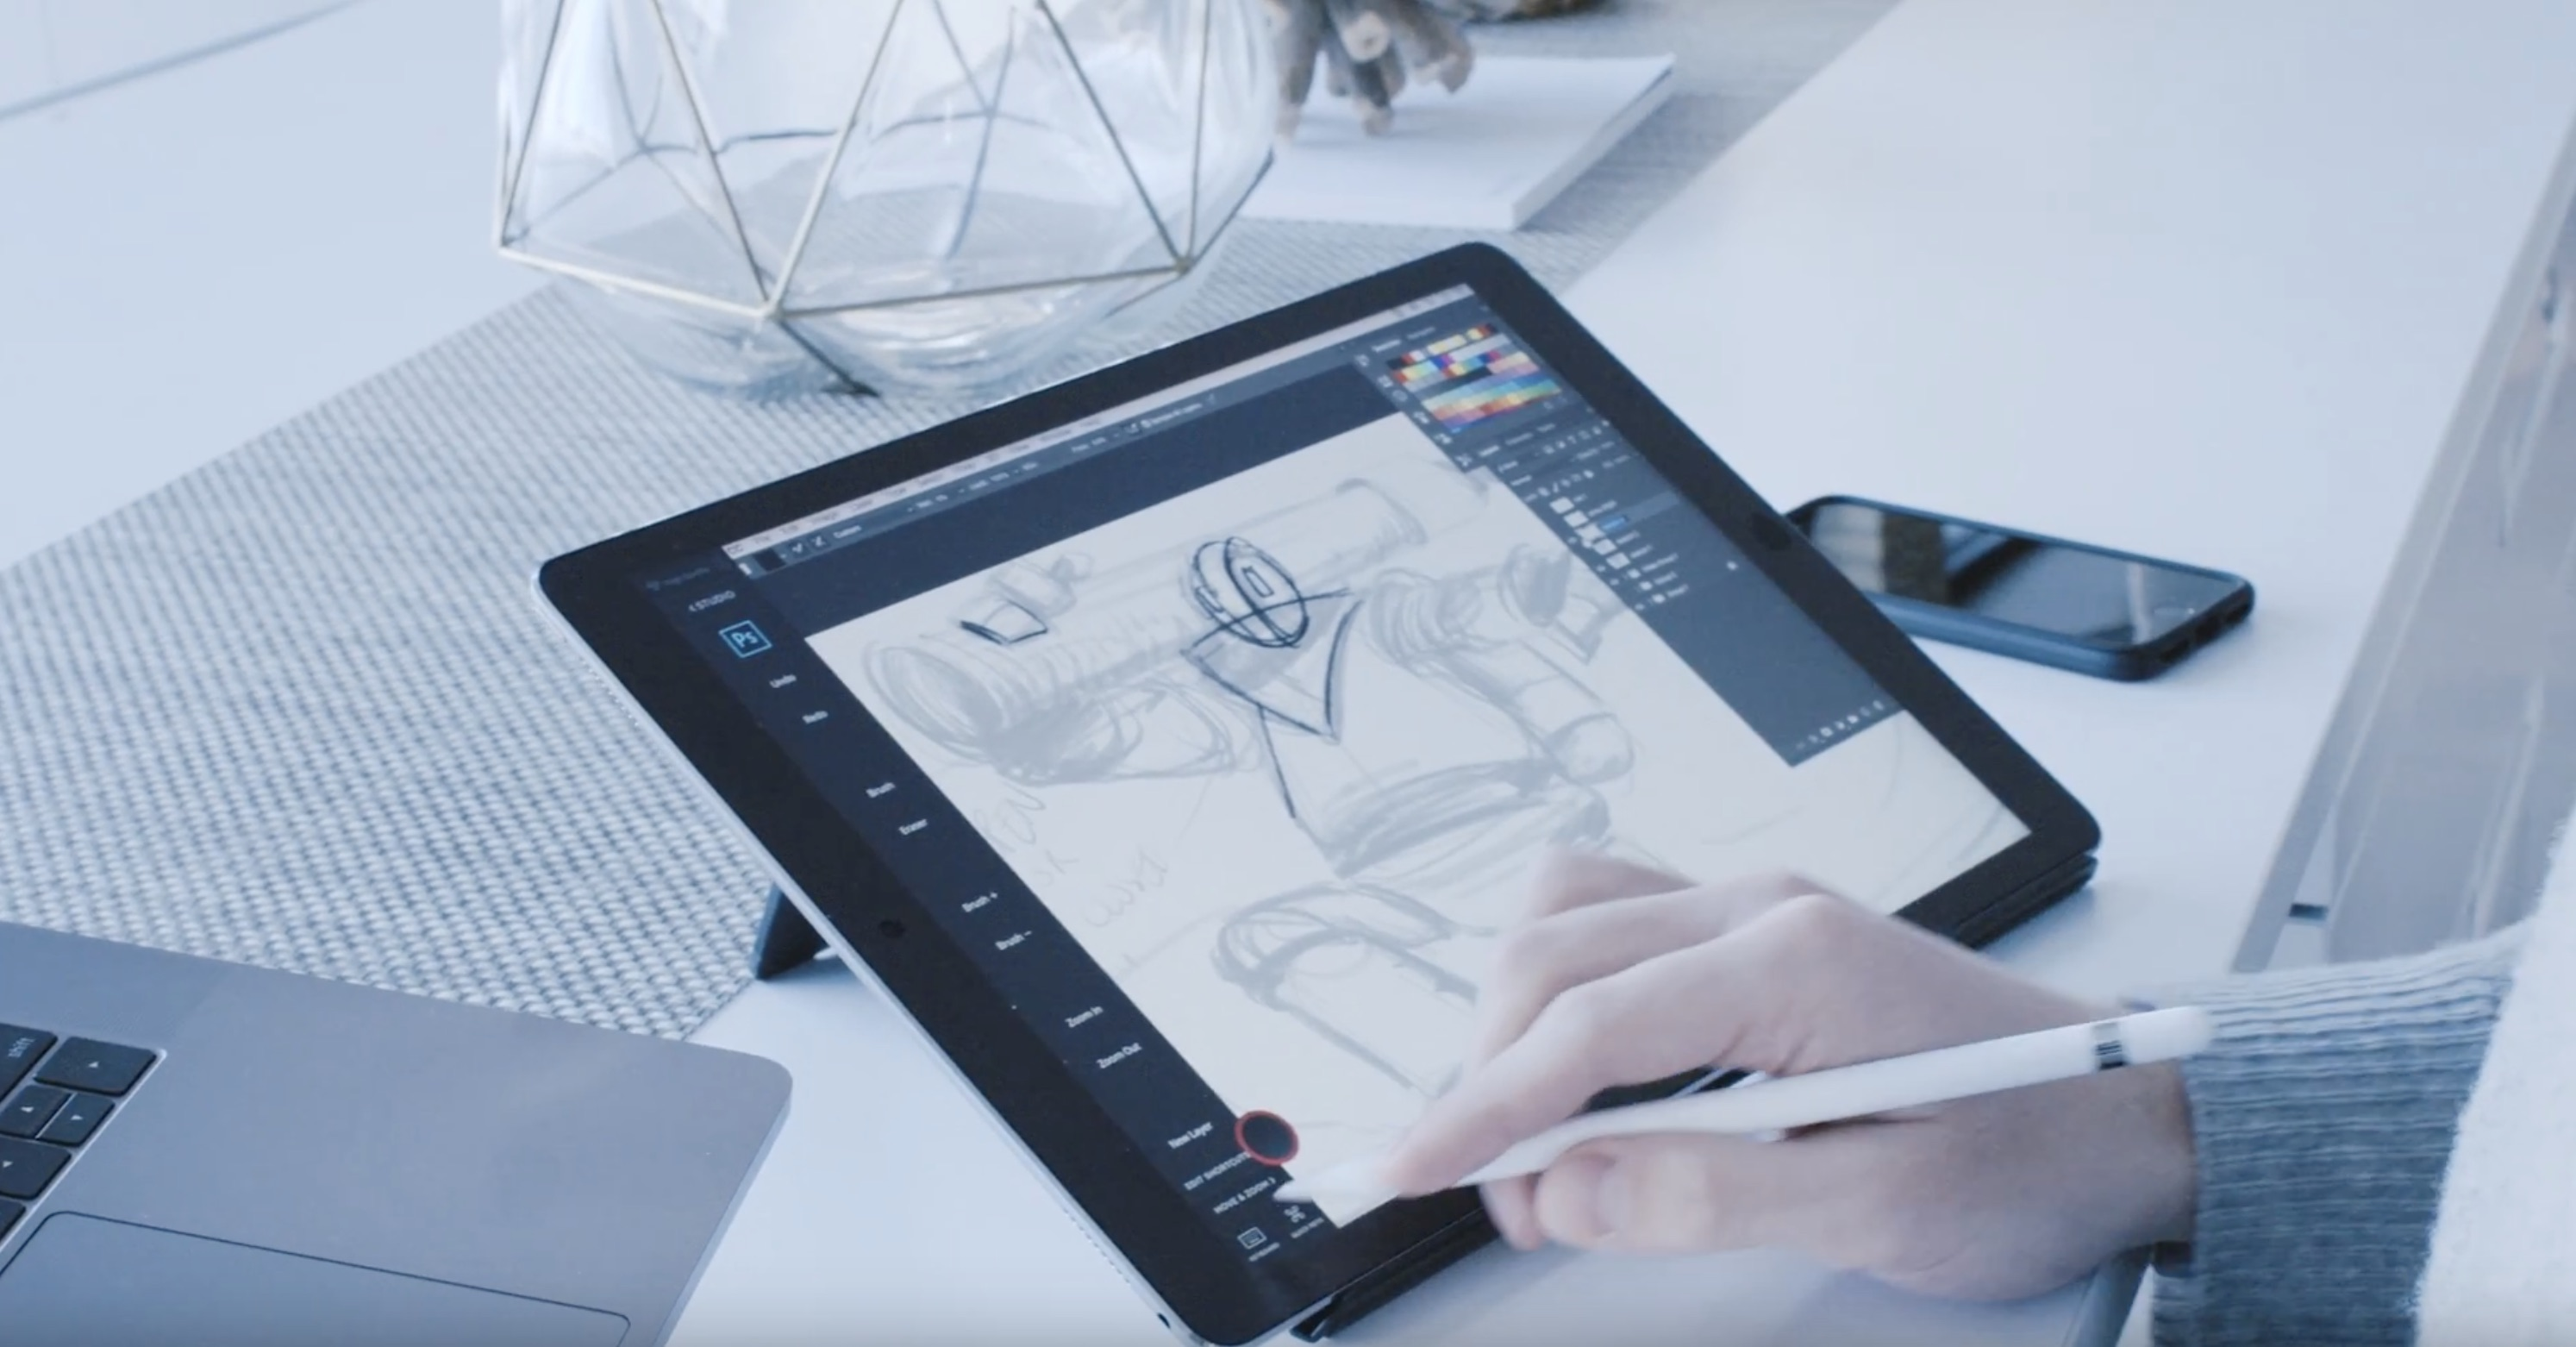 2988x1562 The Best Ios Apps For Drawing With Apple Pencil + Ipad Pro 9to5mac